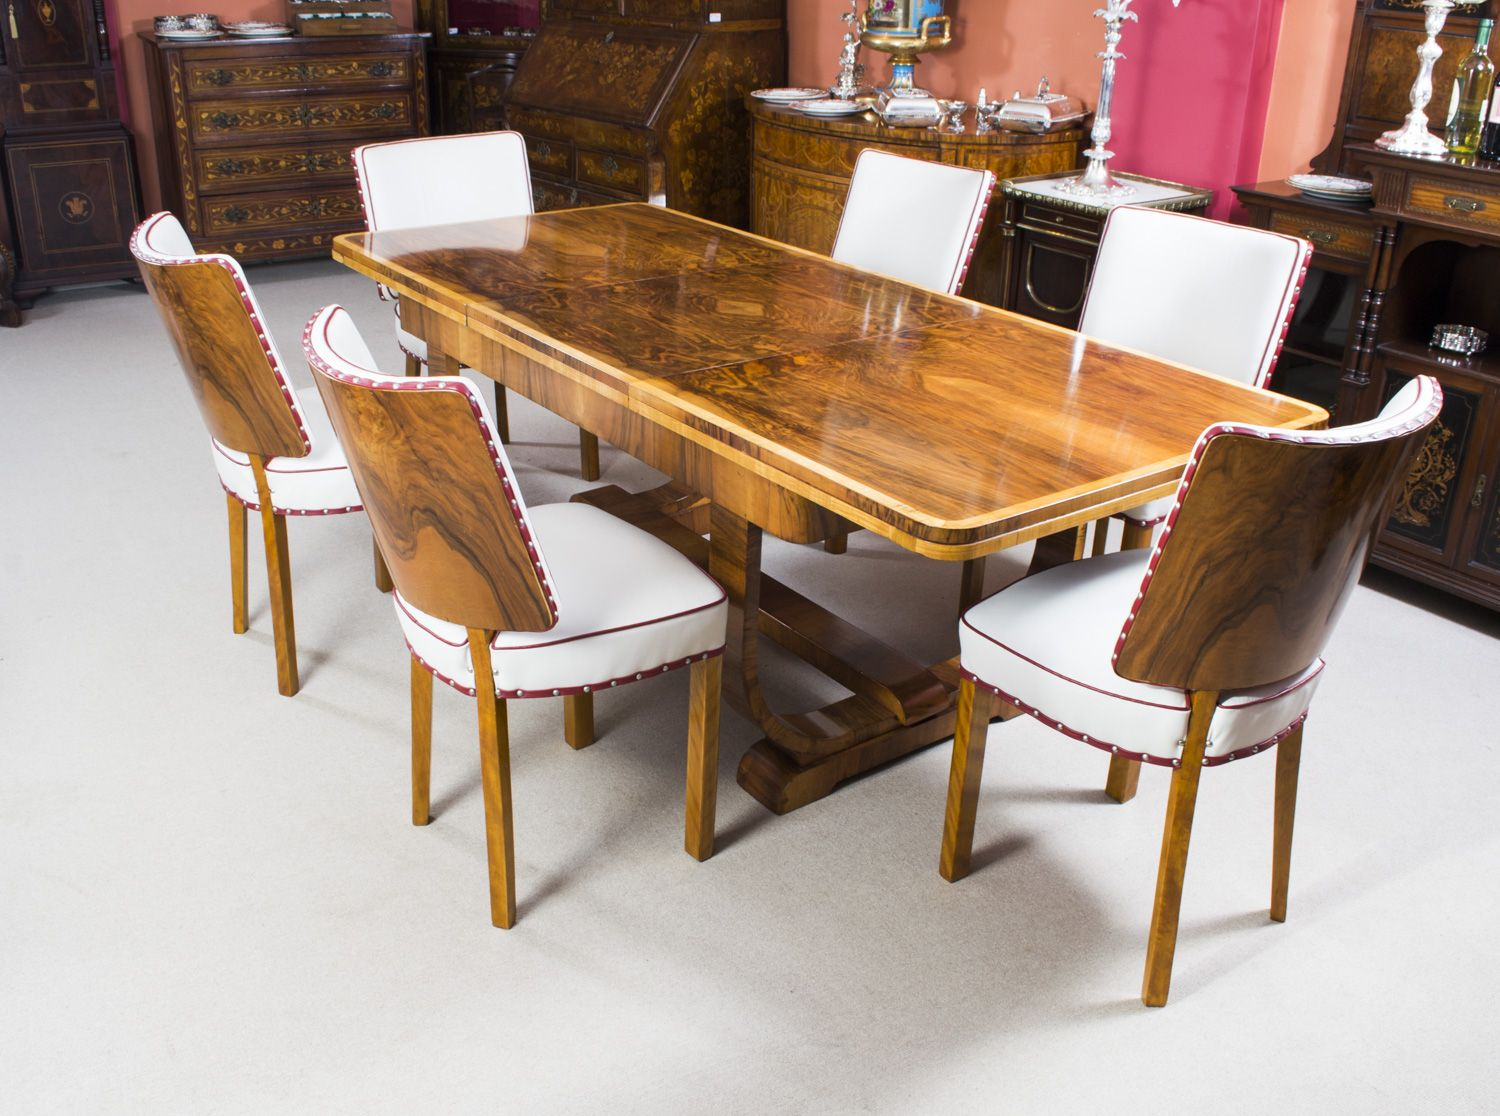 A Beautiful Antique Art Deco Burr Walnut Dining Table Circa 1930